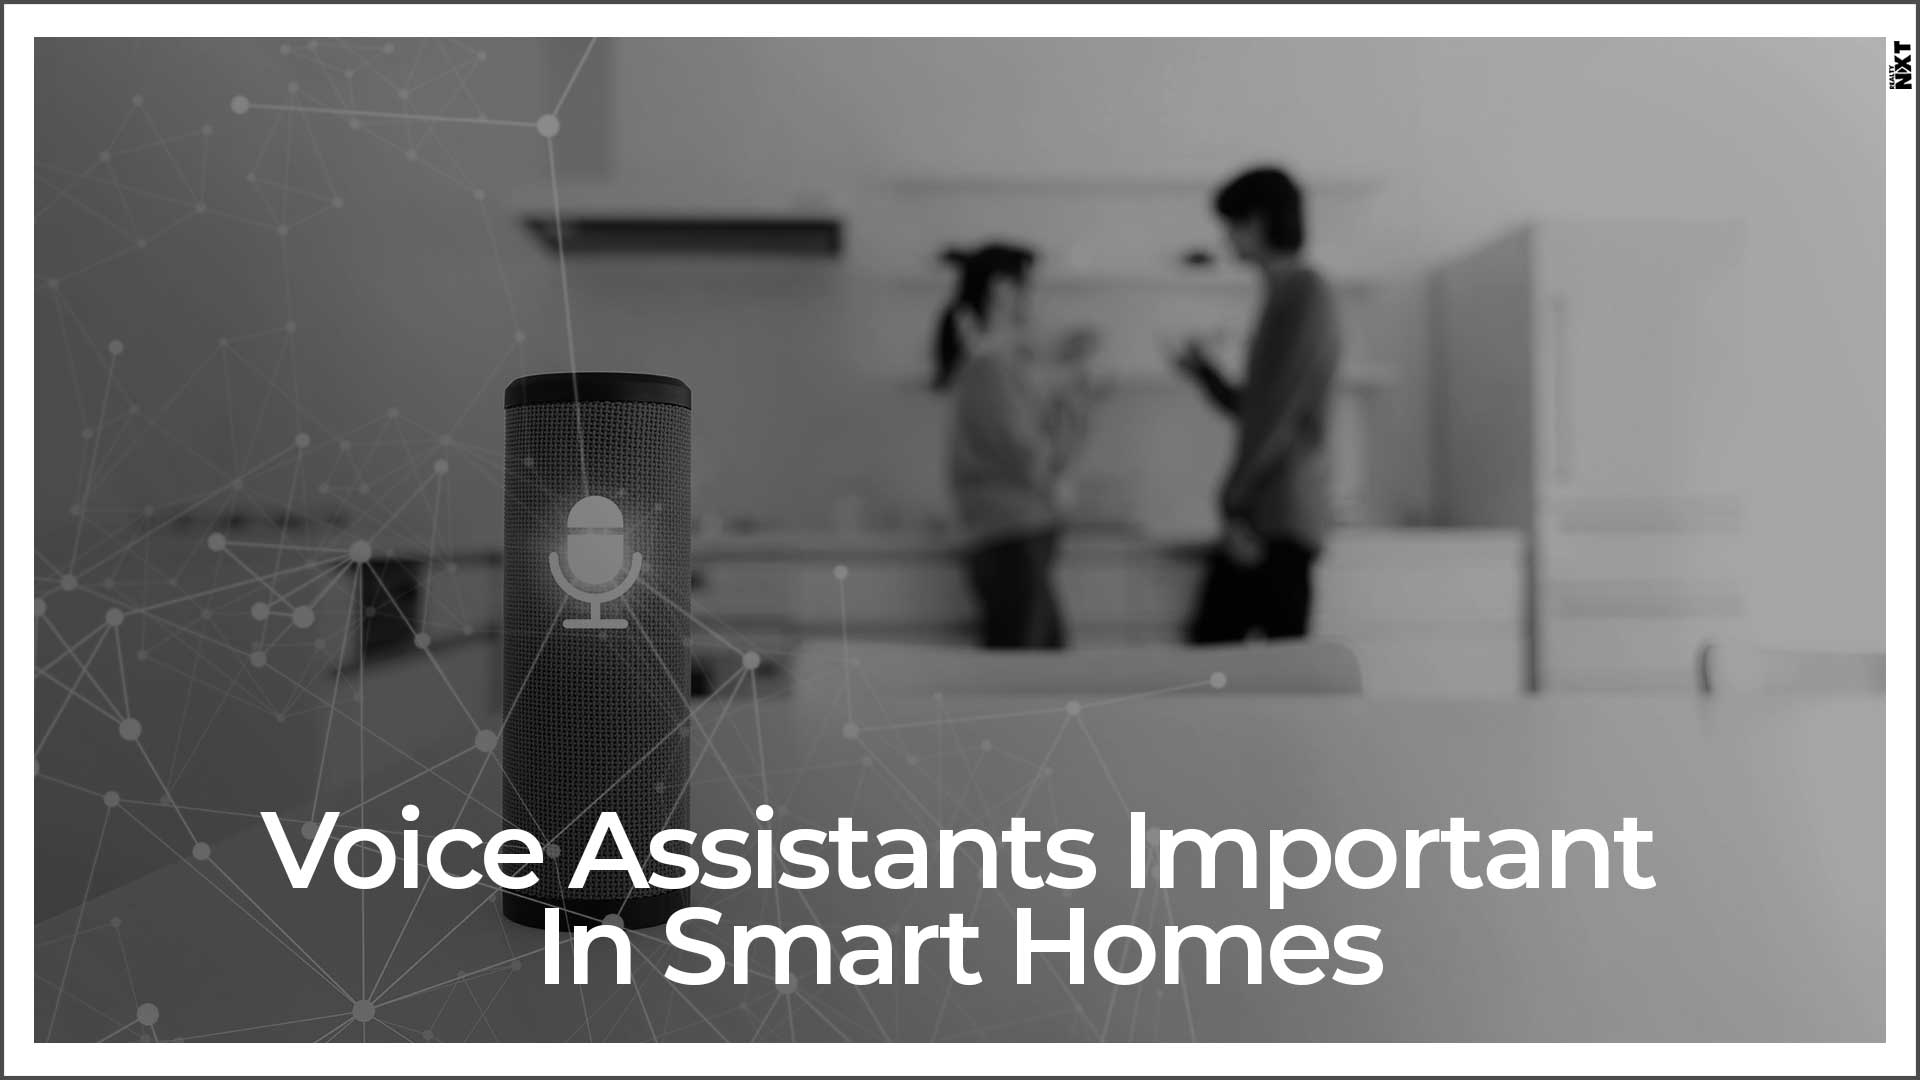 Usage Of Voice Assistants To Soar In China